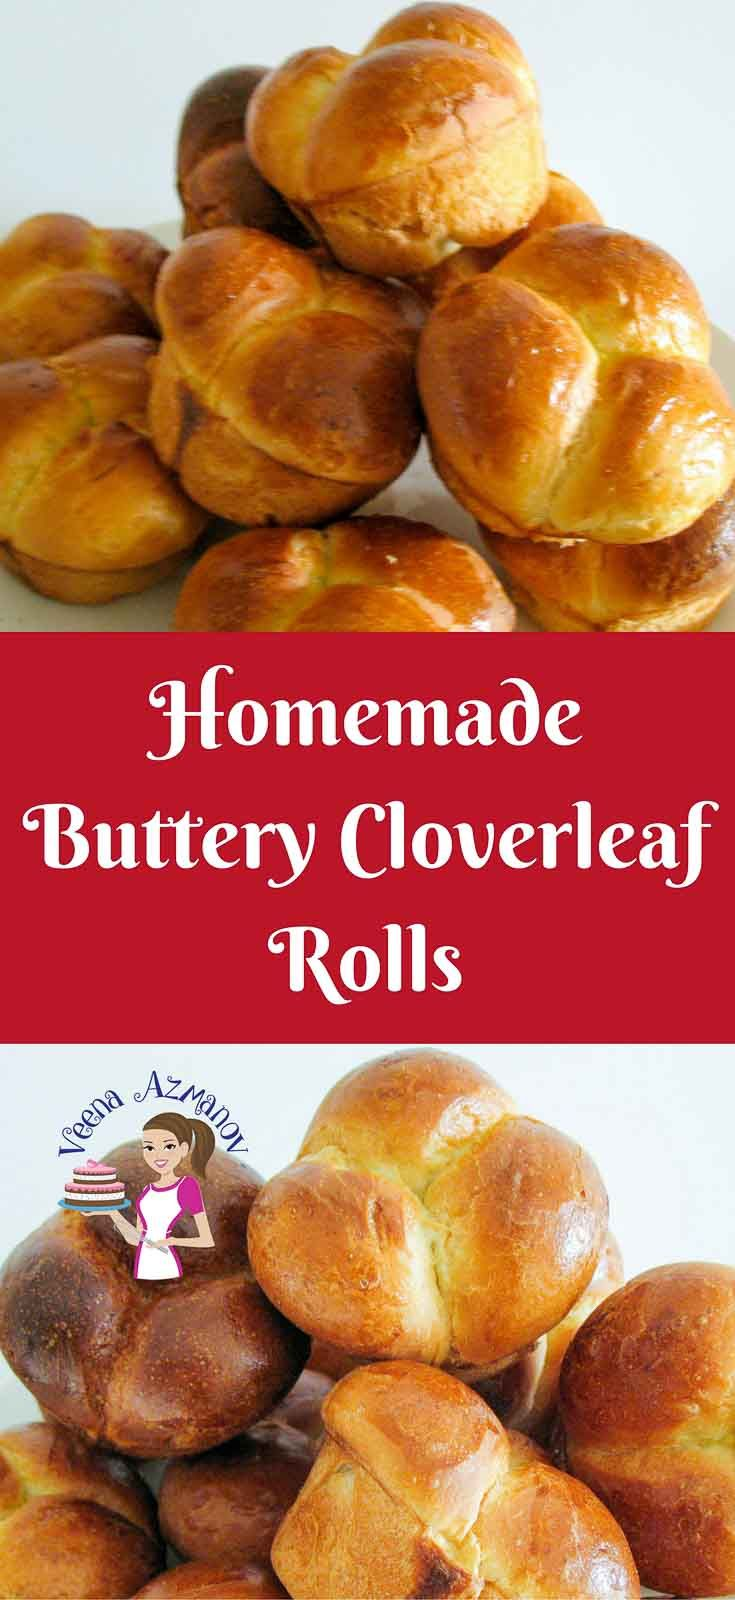 Image showing a close up of the Homemade Buttery Cloverleaf Rolls Recipe